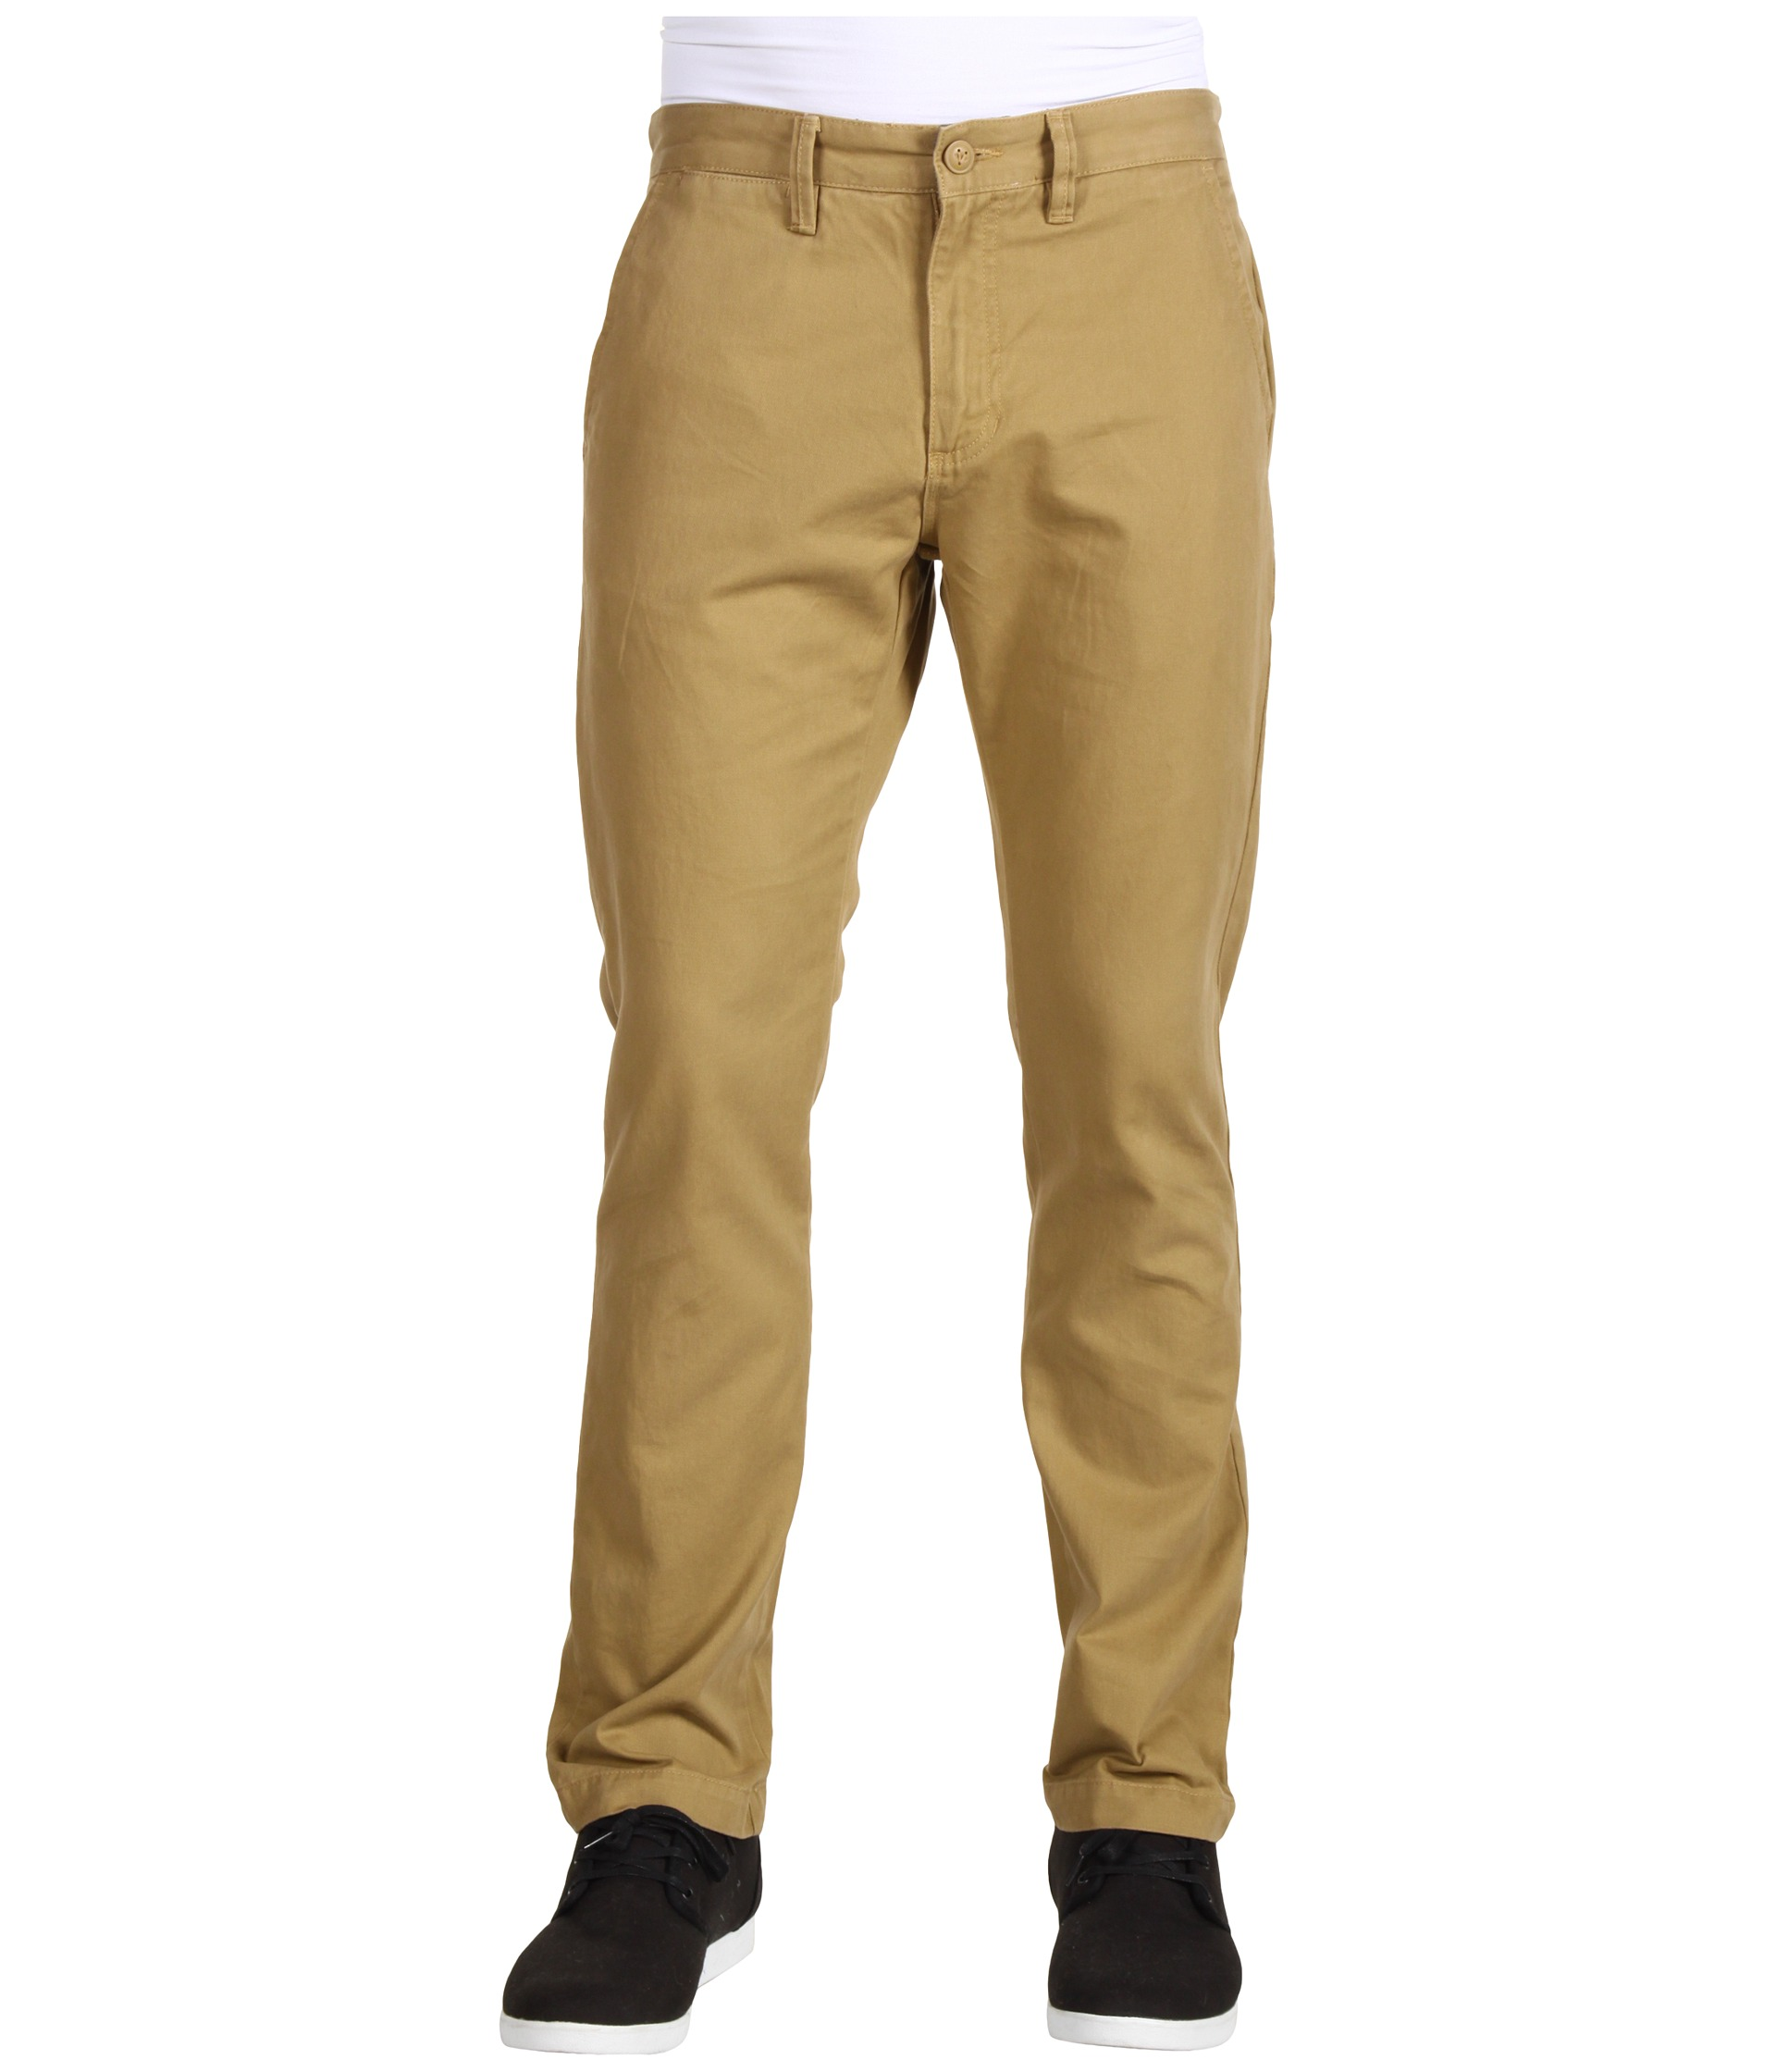 Shop our collection of men's pants including chinos, cropped and cargo pants for men. Find the perfect pair of men's pants: comfortable and crafted for day-to-day wear. UNIQLO US.